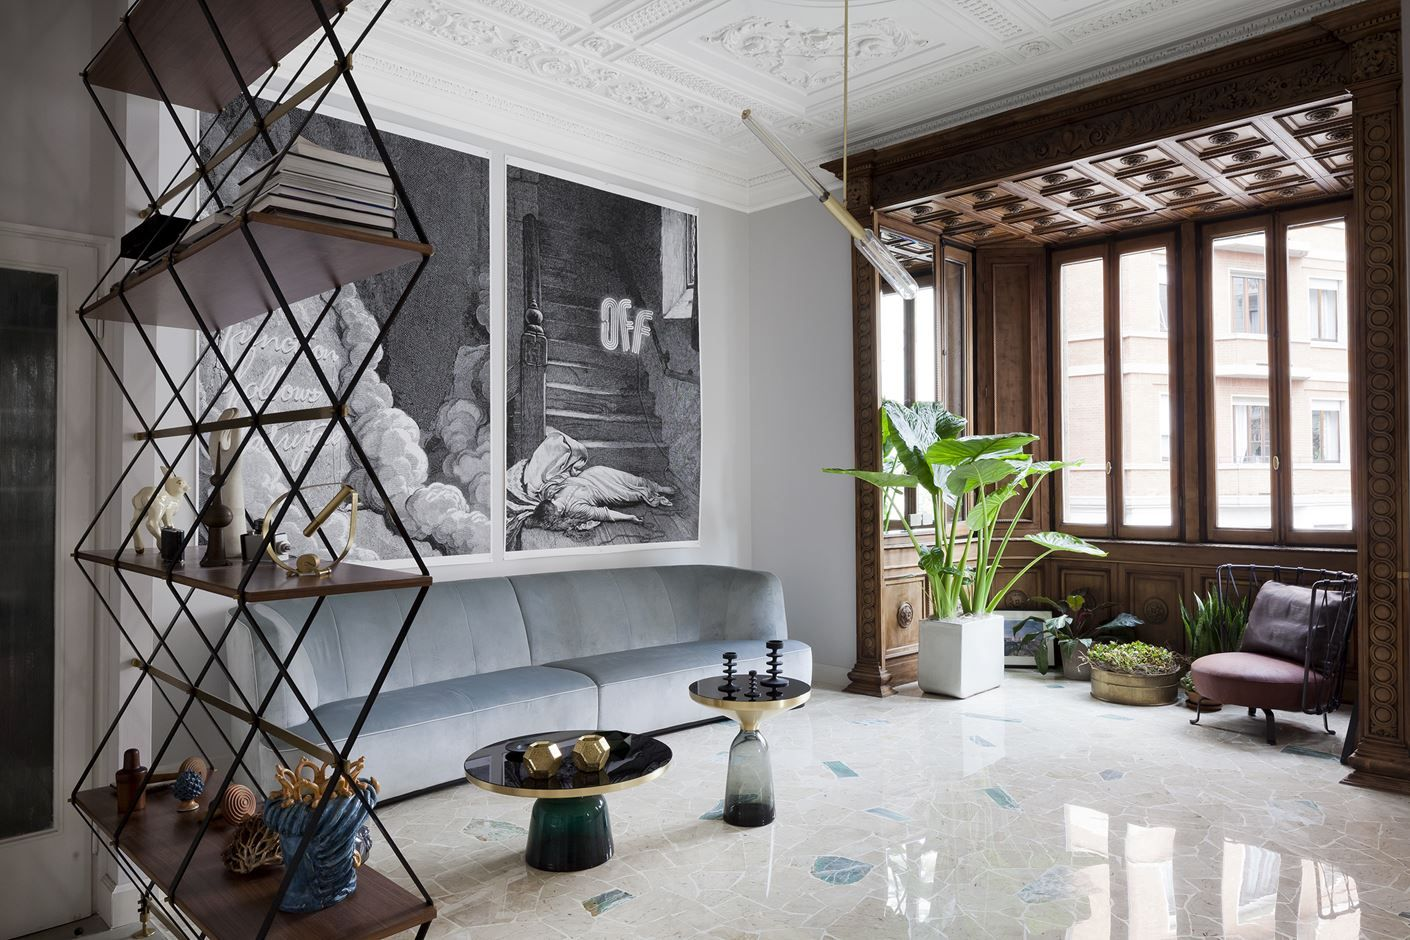 House of adriano and silvia picture gallery projects to try